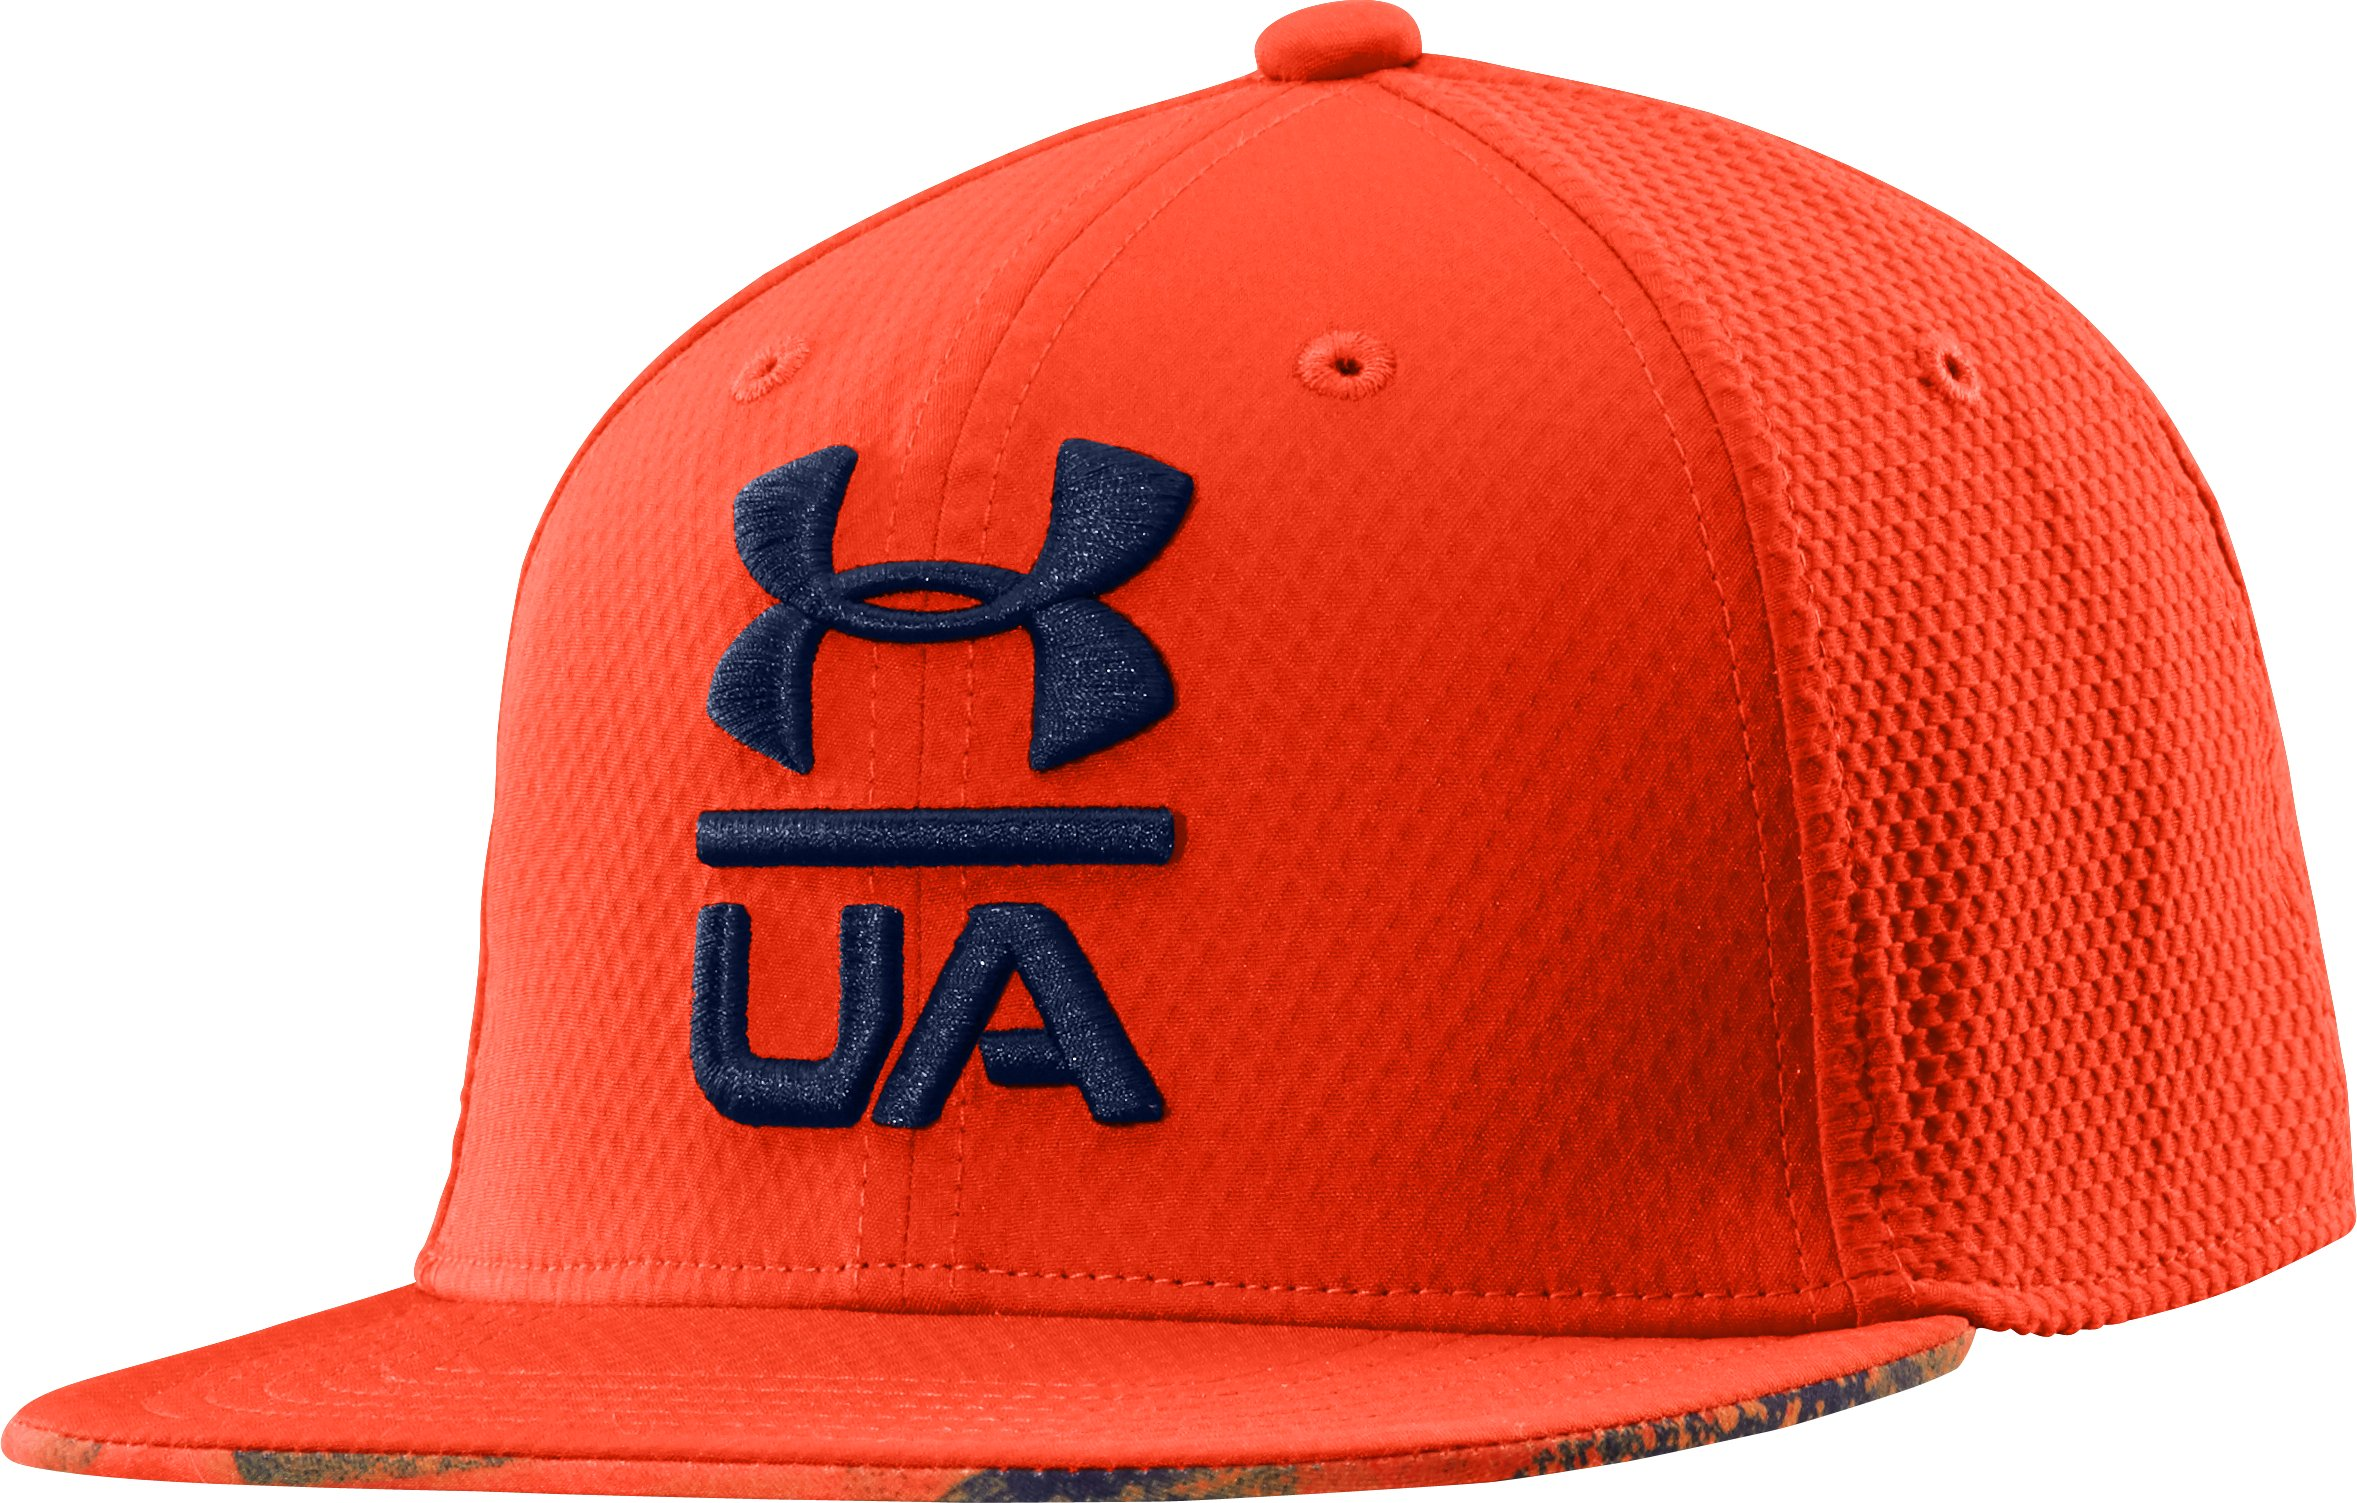 Boys' UA Eyes Up Flat Brim Stretch Fit Cap, Volcano, zoomed image